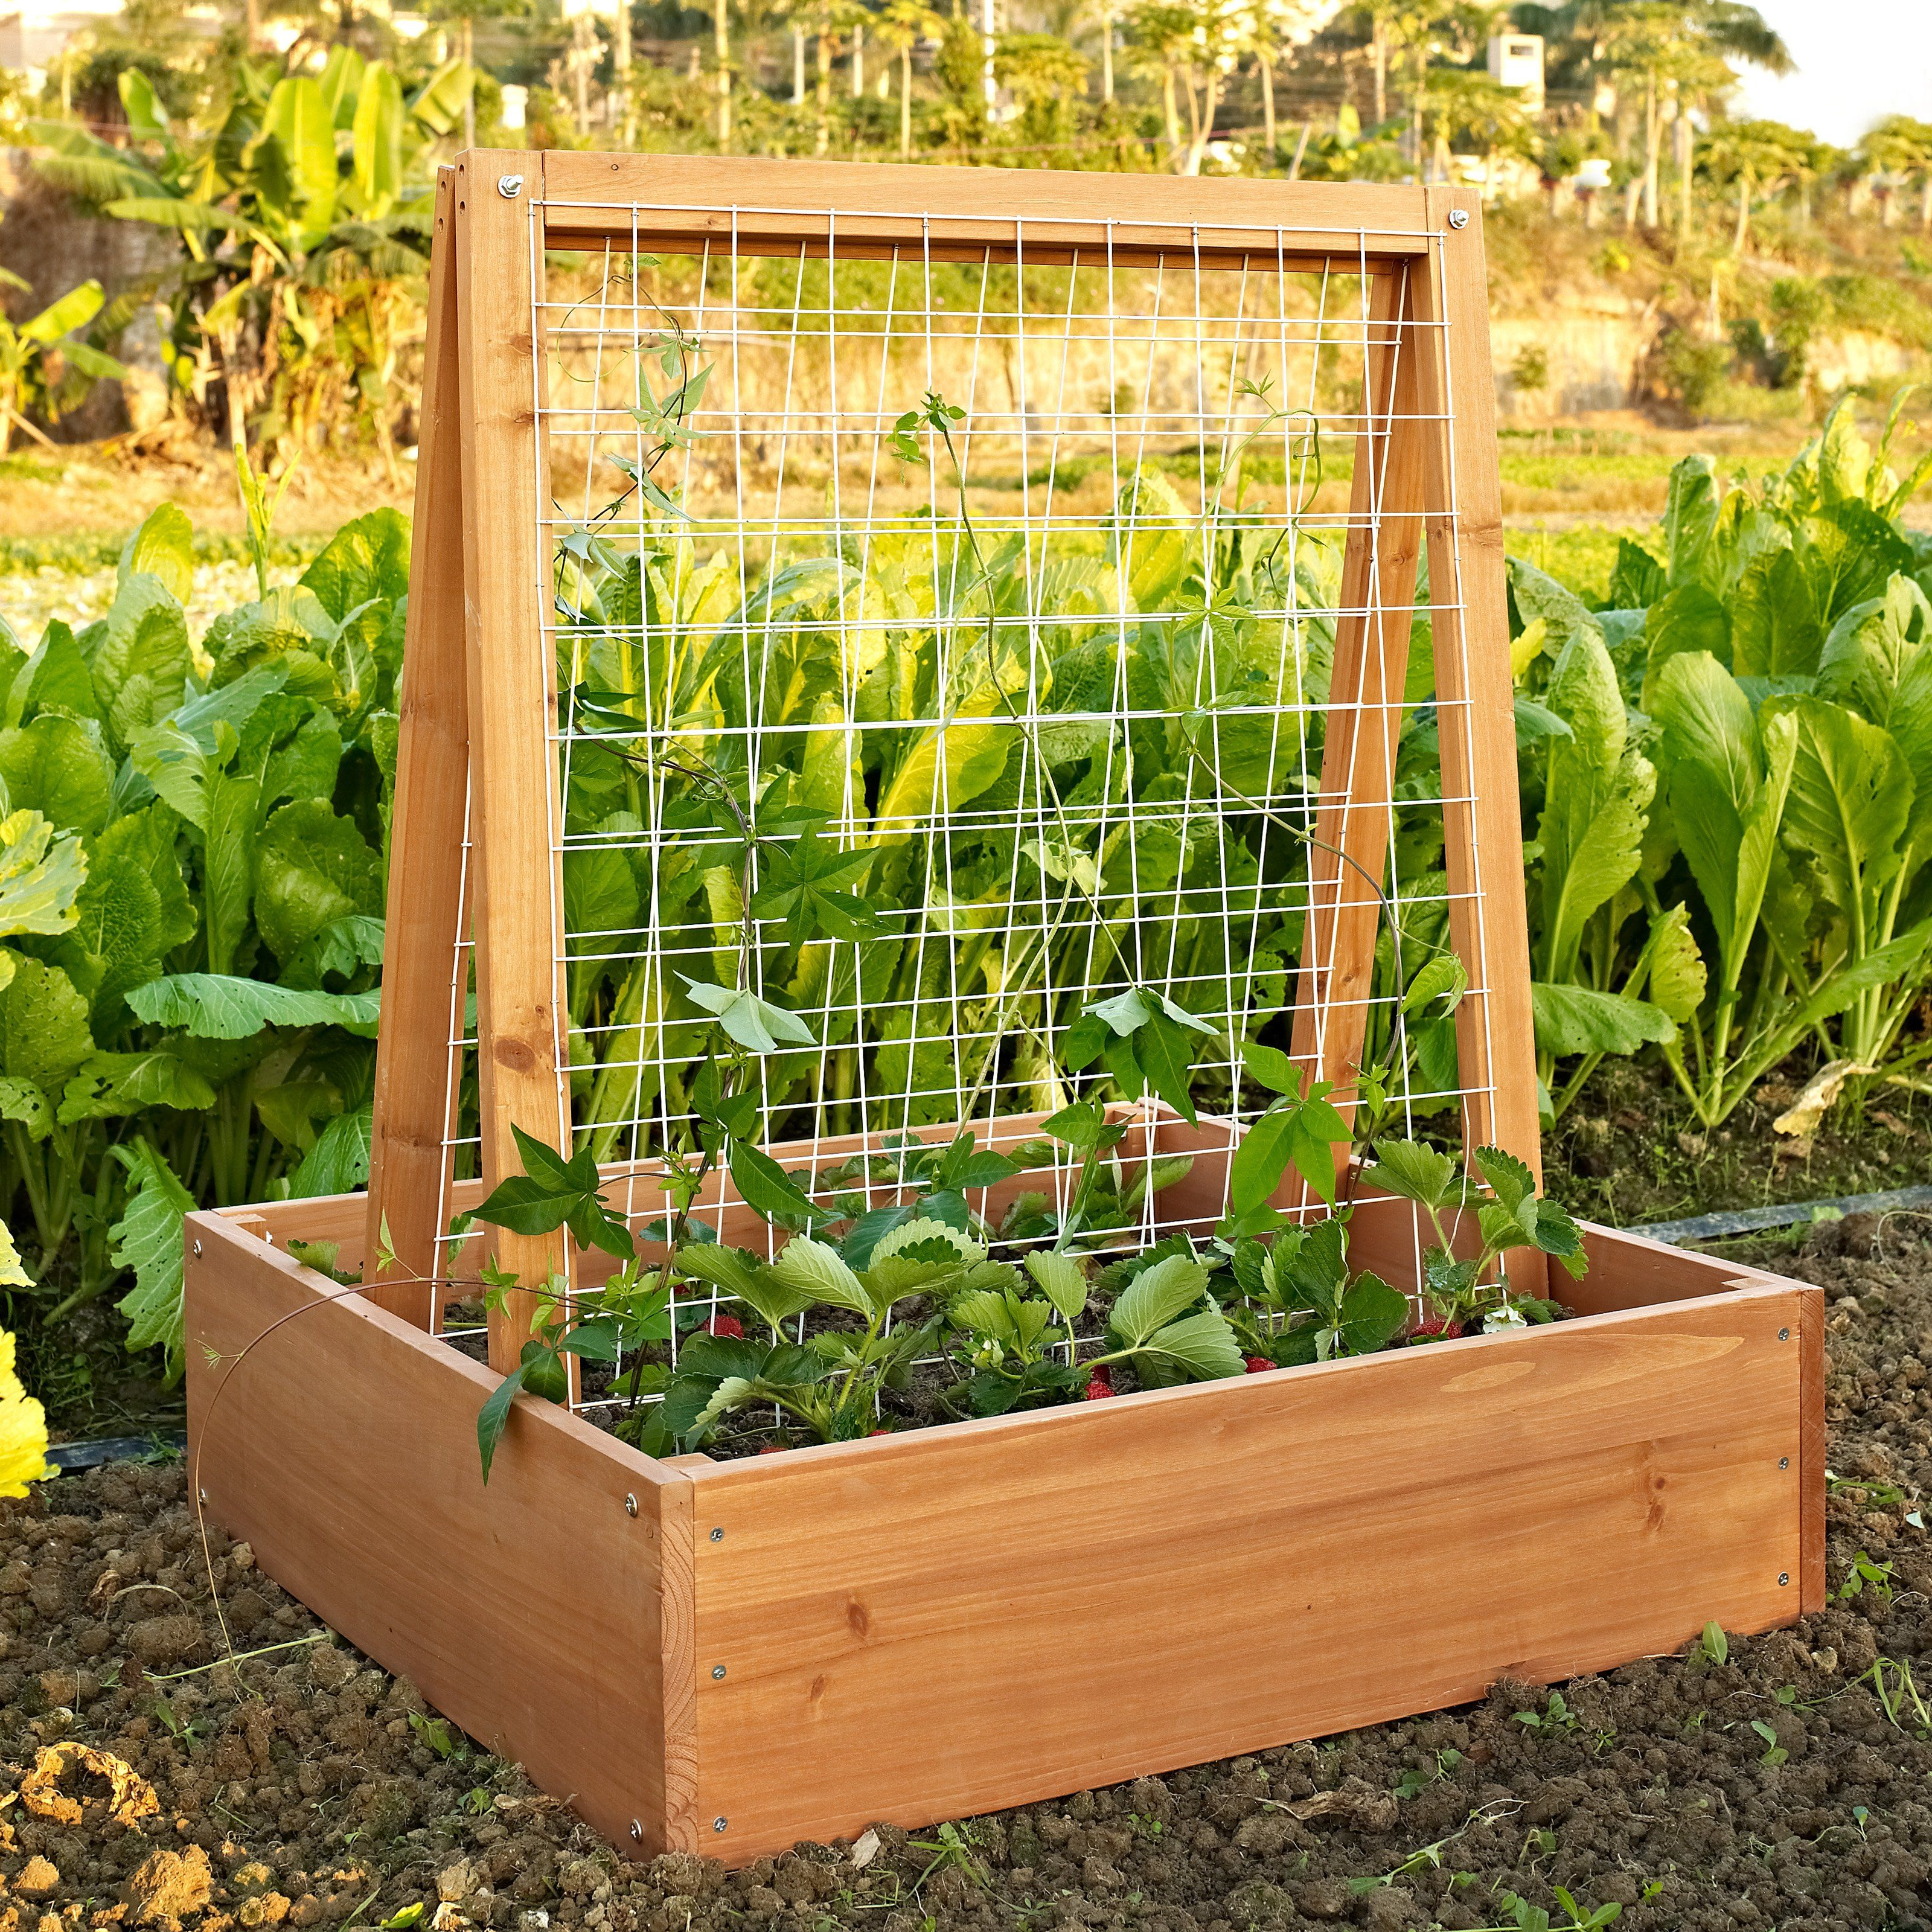 10 Raised Garden Beds That Fit Any Backyard Space